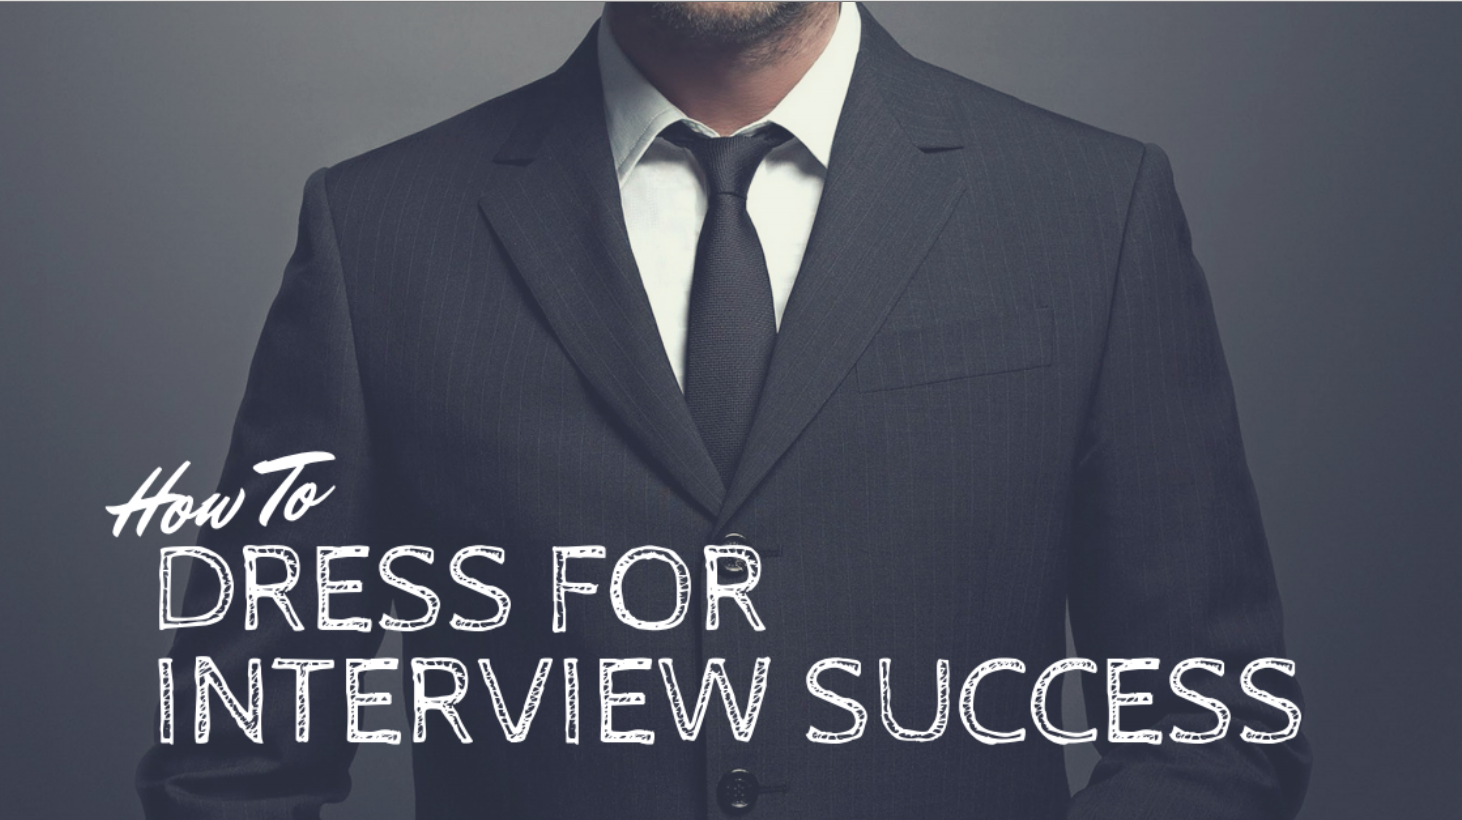 How To Dress for Interview Success